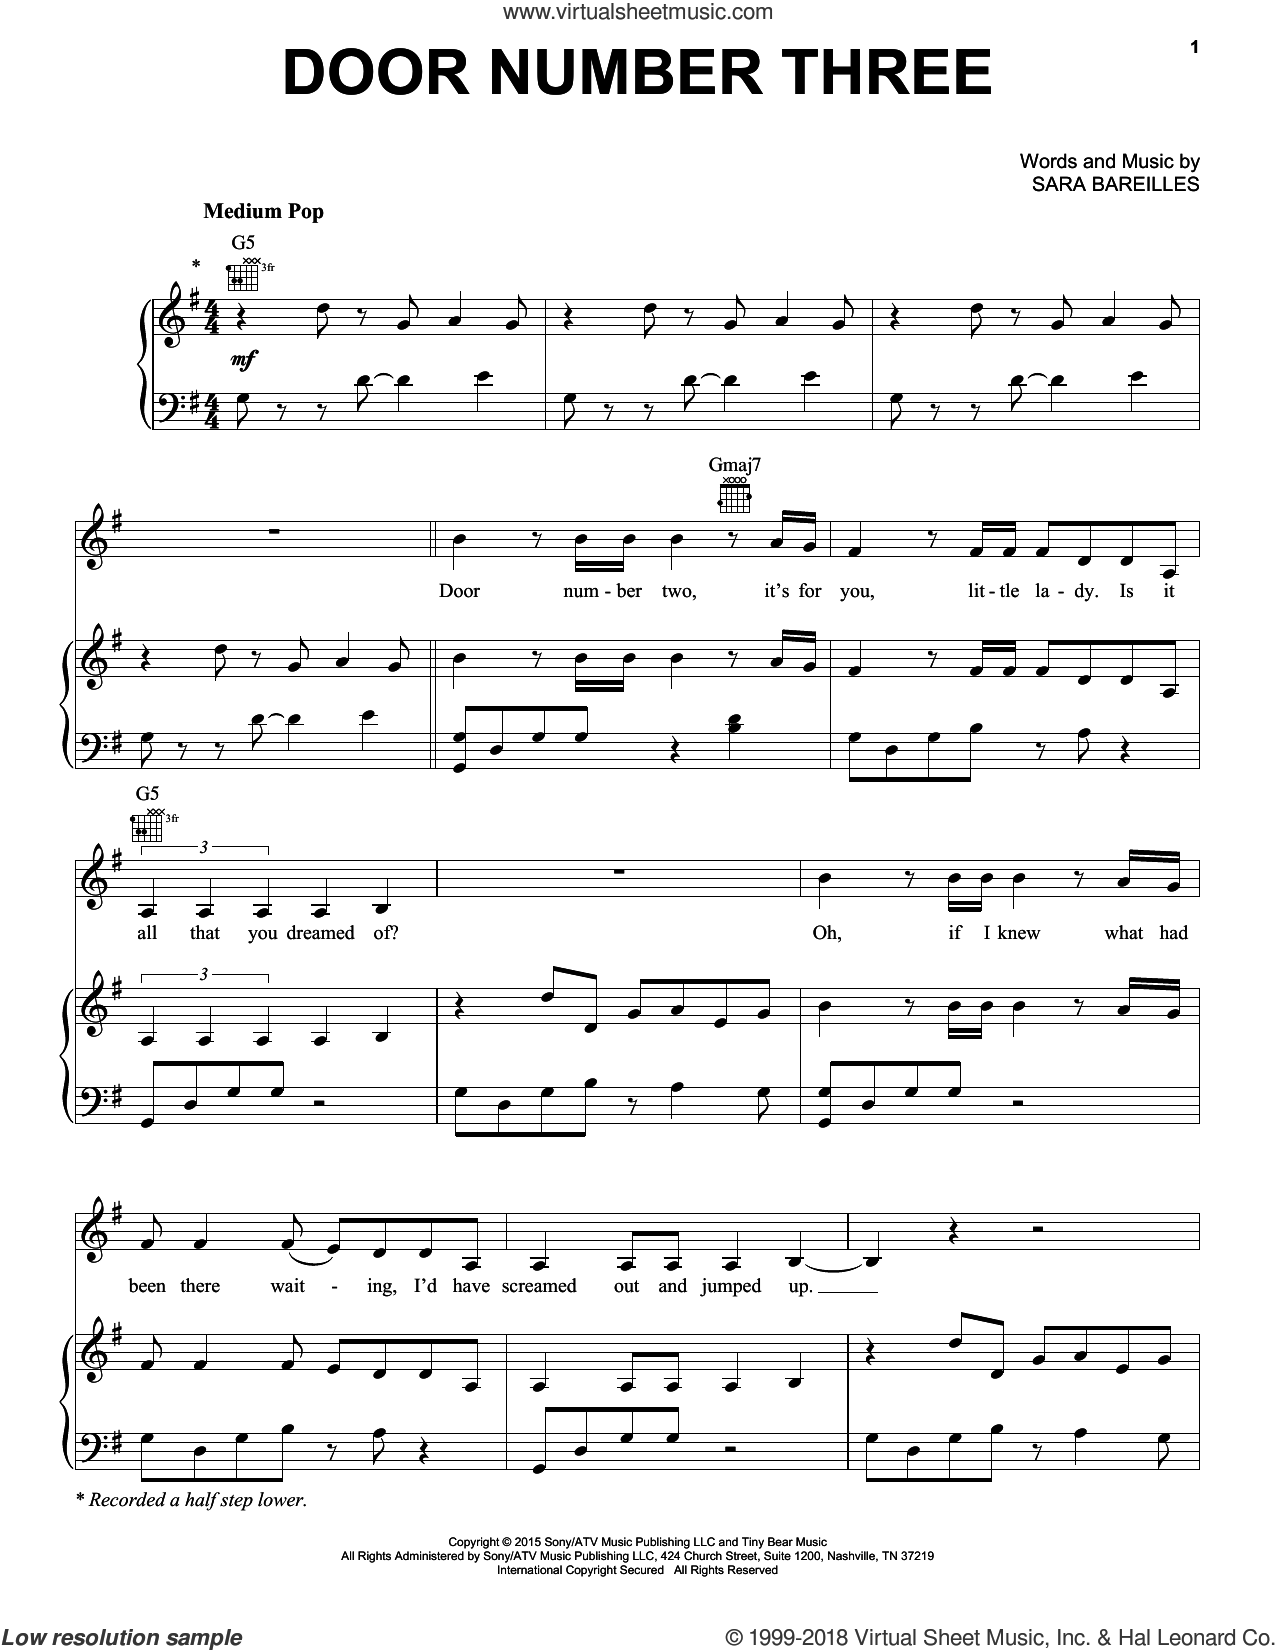 Door Number Three sheet music for voice, piano or guitar by Sara Bareilles. Score Image Preview.